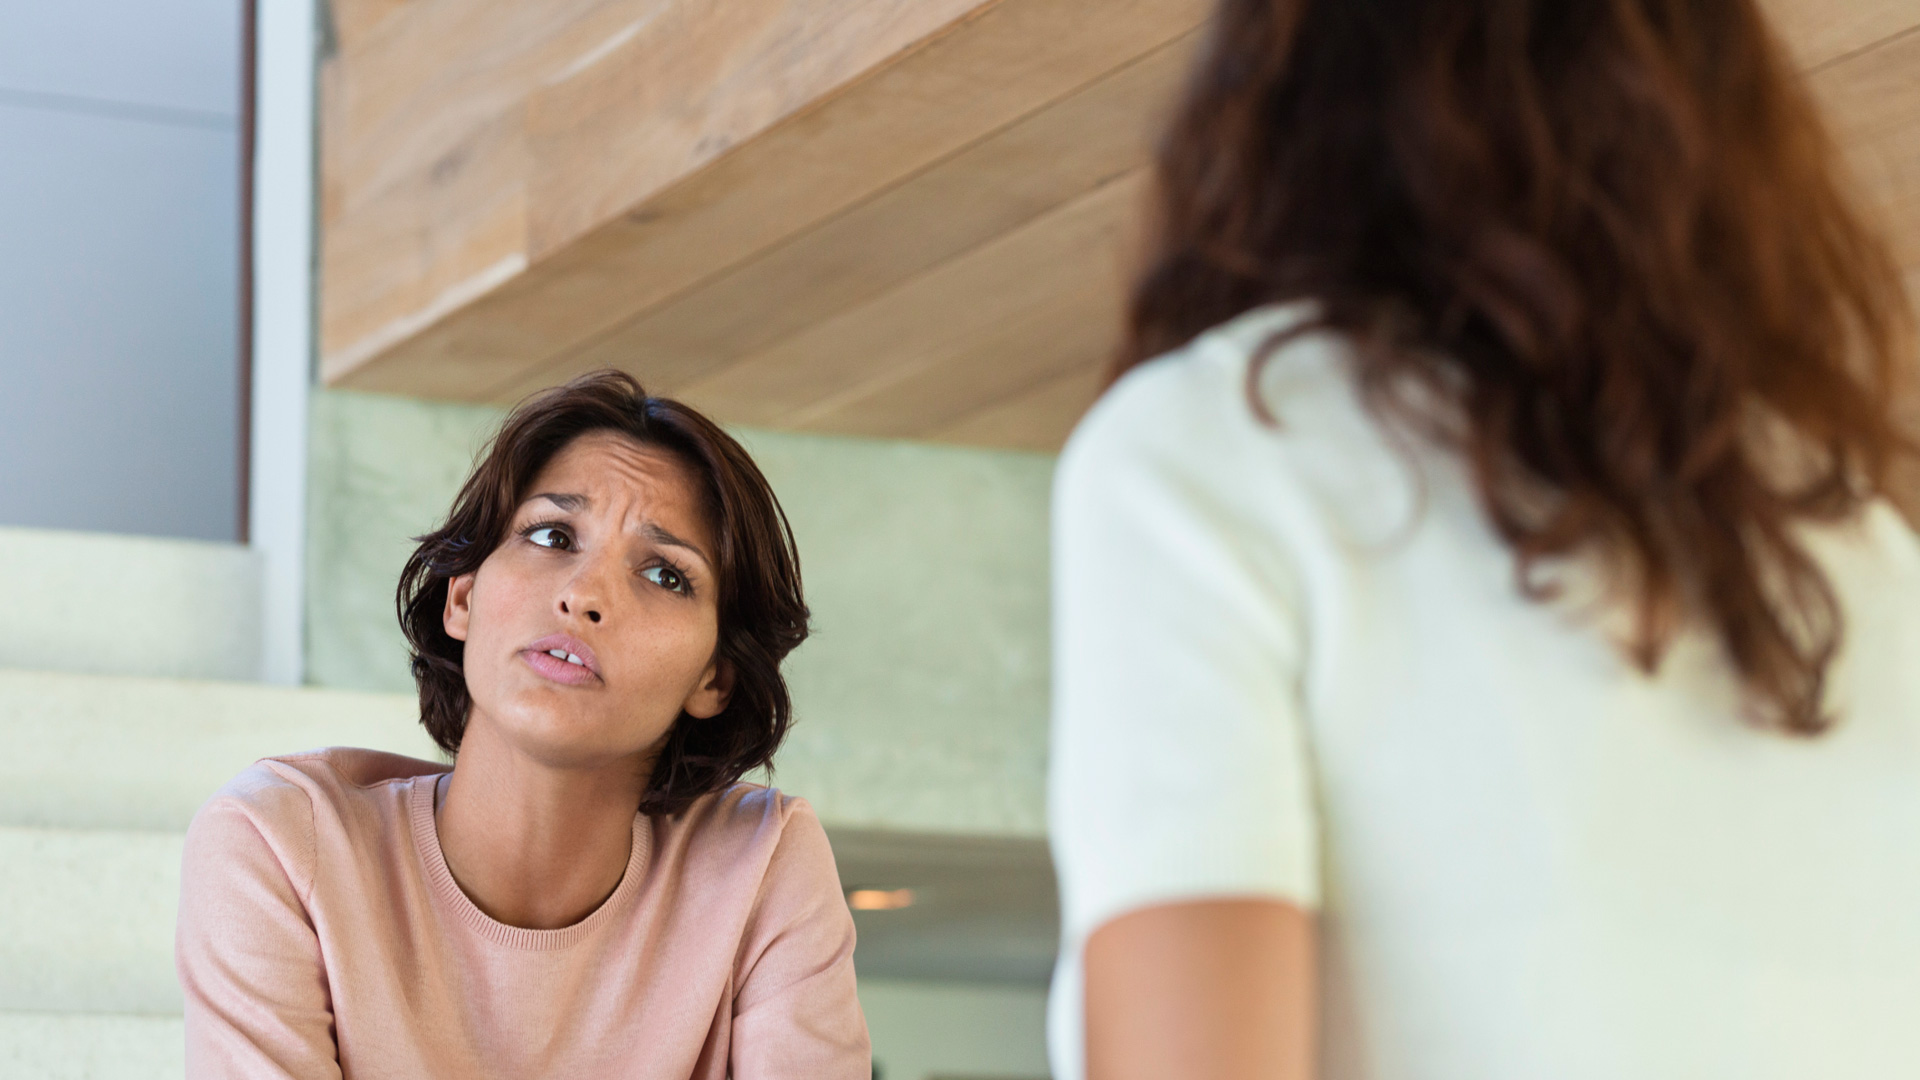 Woman annoyed with friend